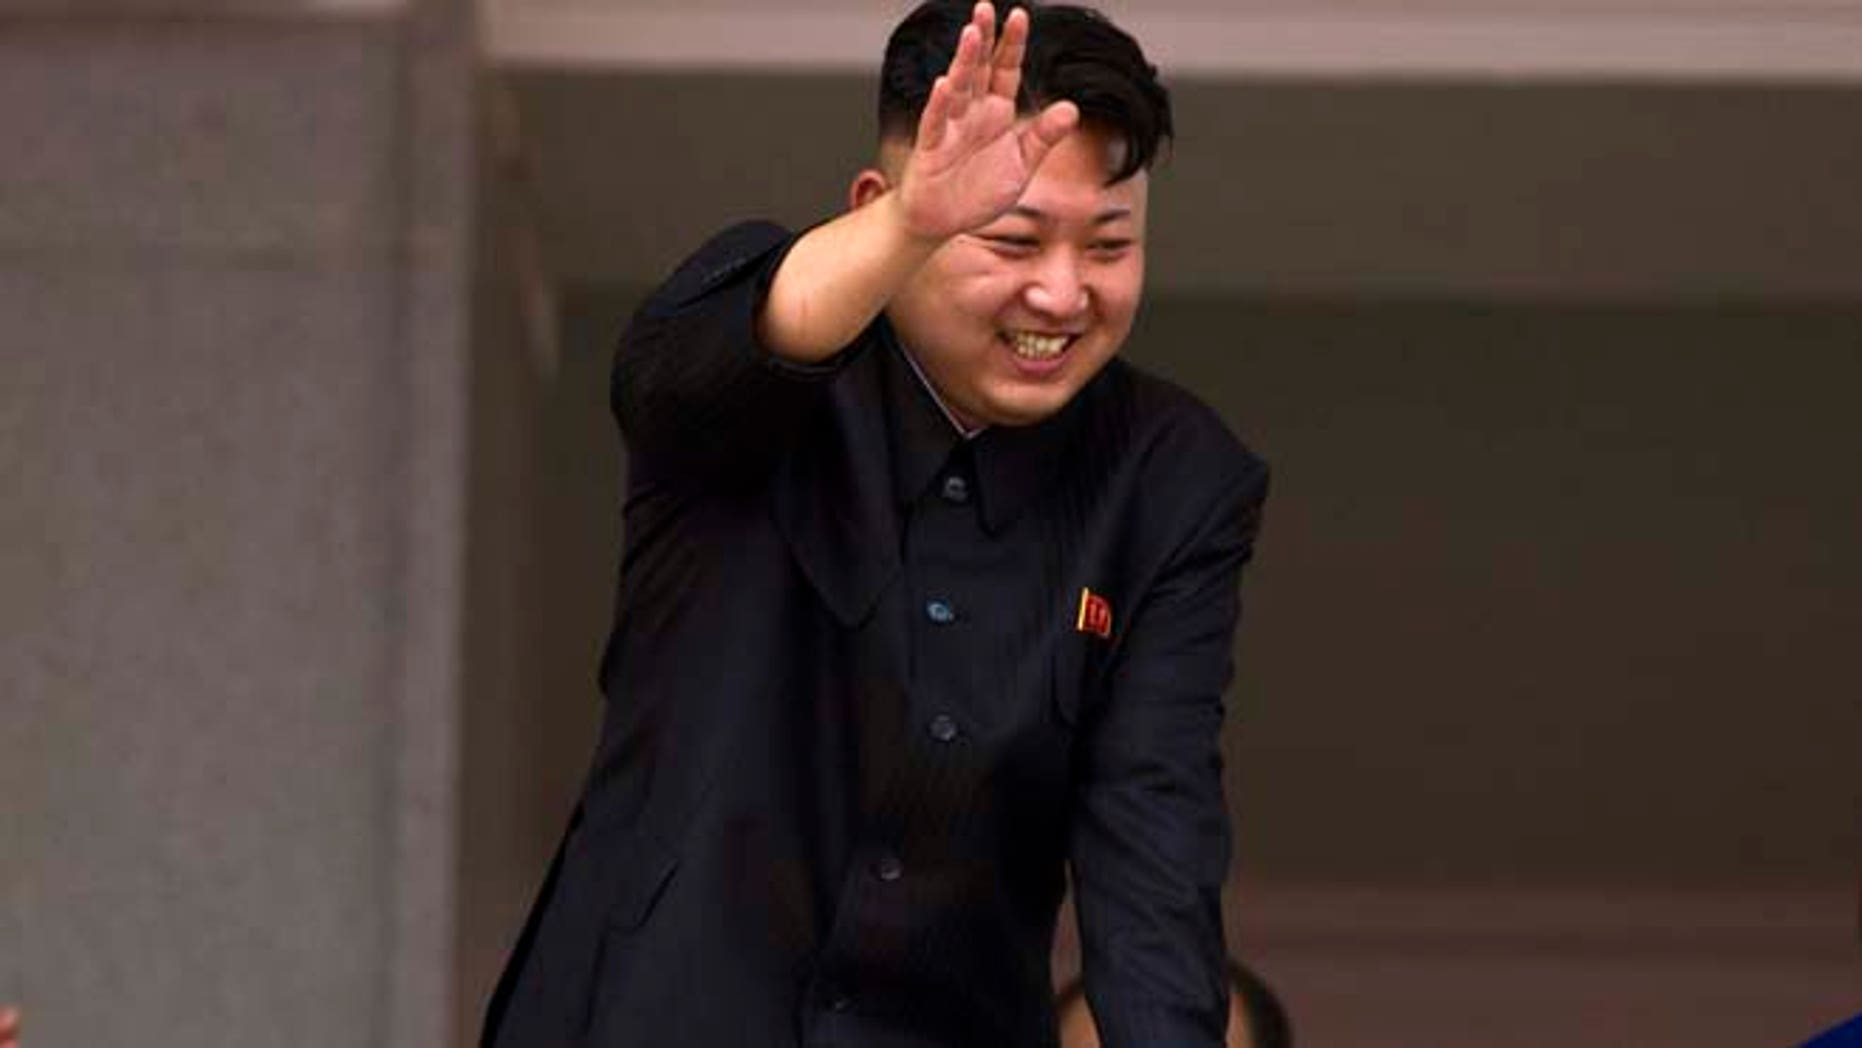 July 27, 2013: In this file photo, North Korean leader Kim Jong Un leans over a balcony and waves to Korean War veterans cheering below at the end of a mass military parade on Kim Il Sung Square in Pyongyang to mark the 60th anniversary of the Korean War armistice. (AP)